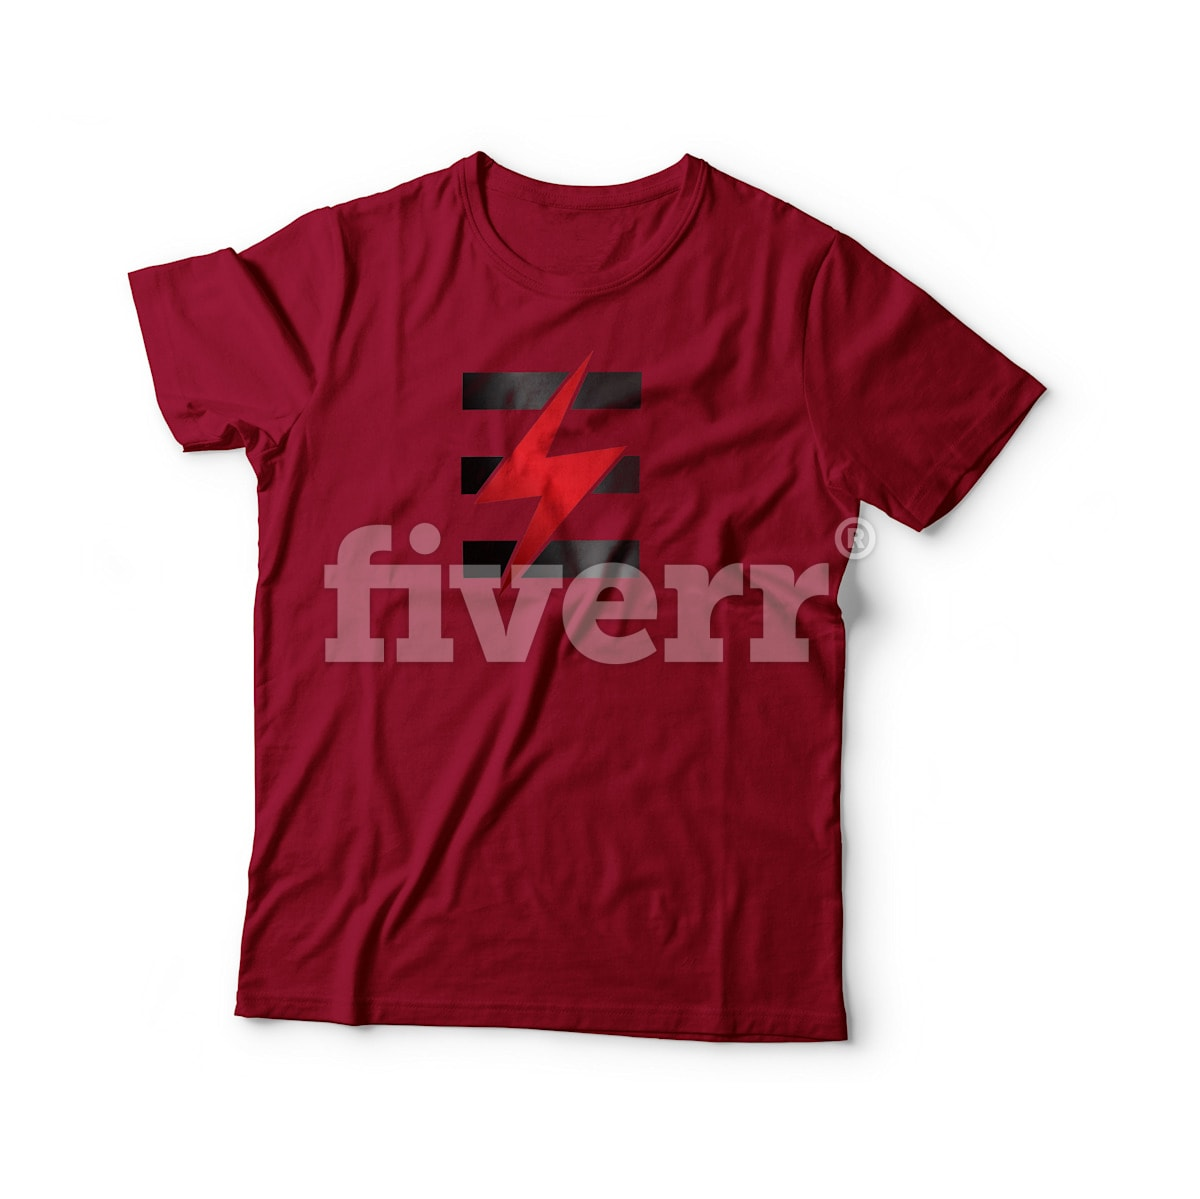 4ab2ed323 Give 75 bestselling attention grabbing t shirt designs by Urbancreatives